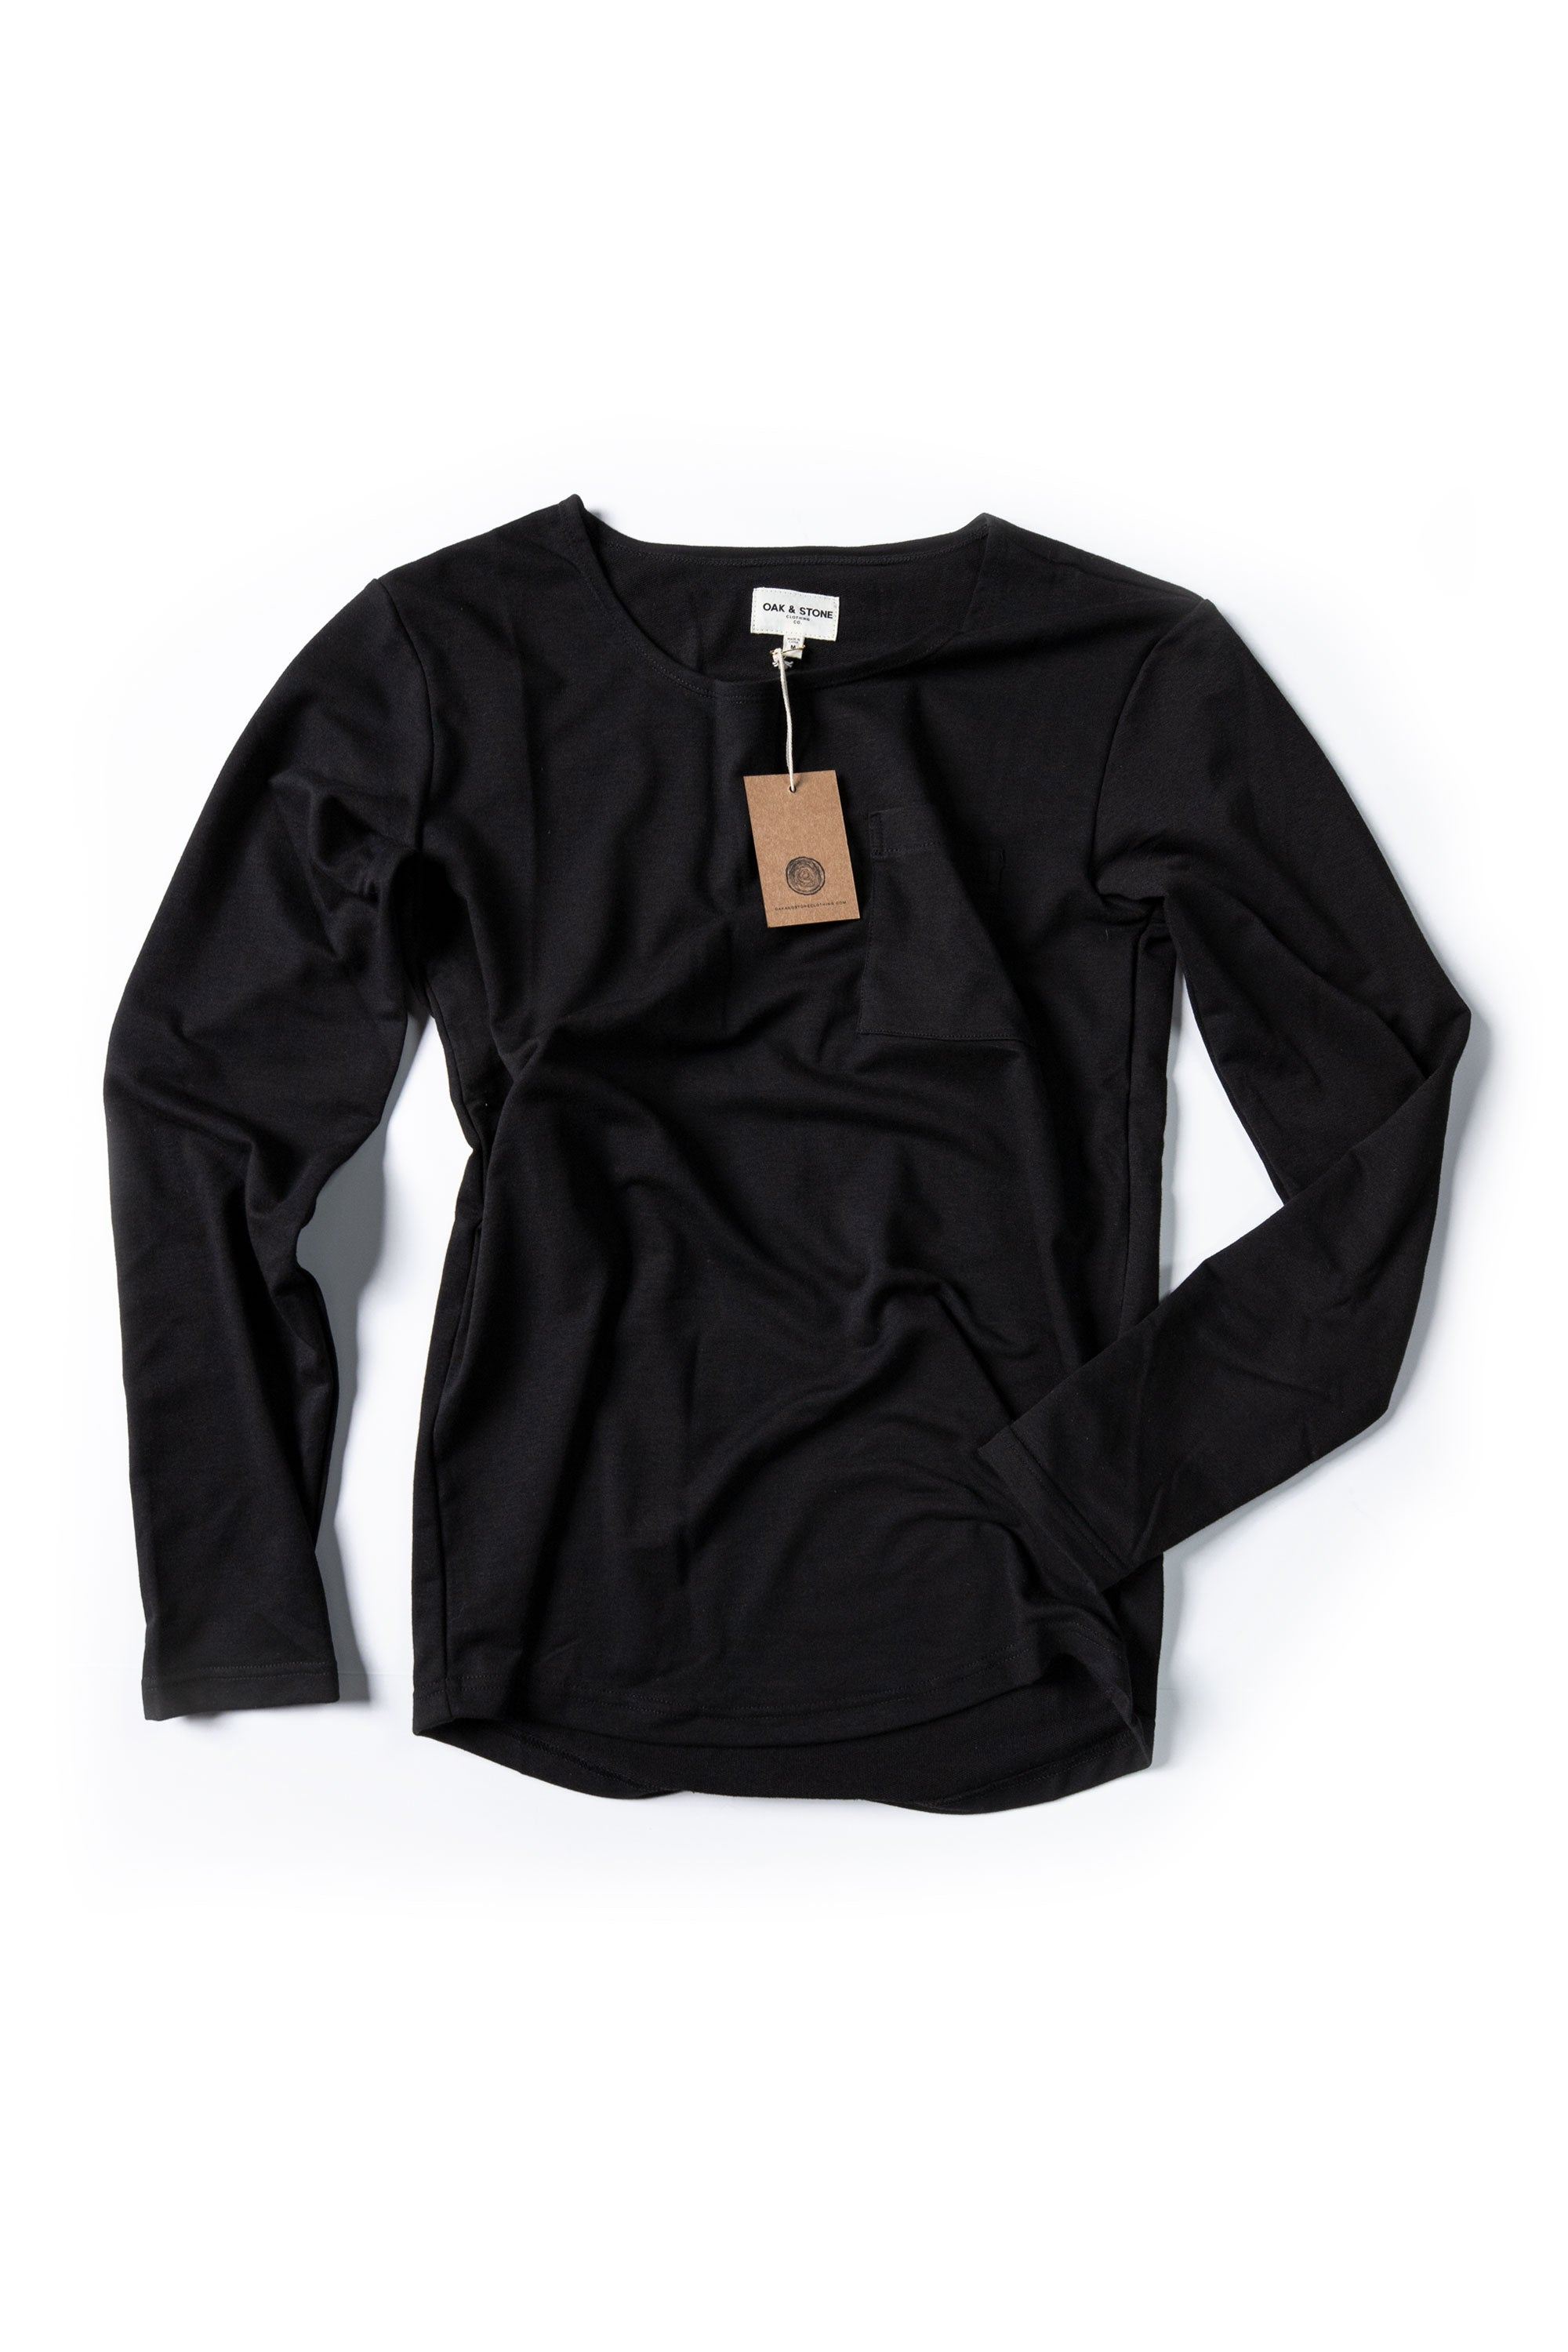 The Classic L/S Curve - Black - Oak & Stone Clothing Co.